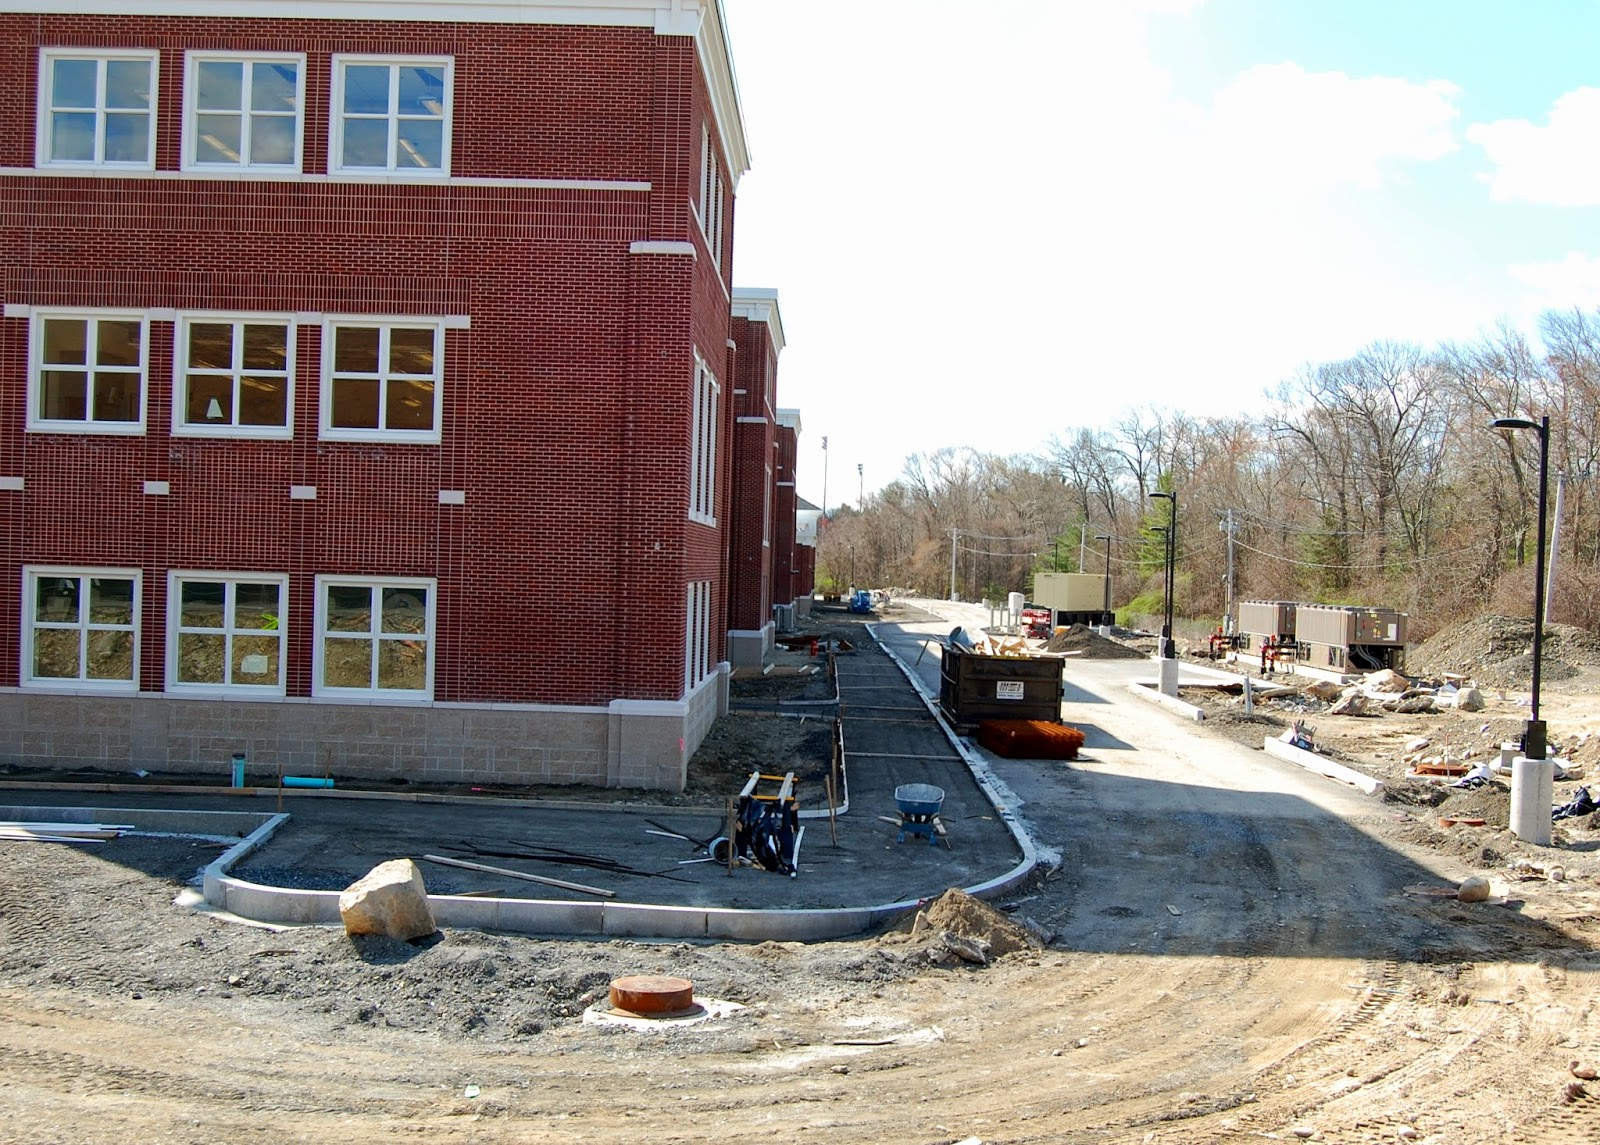 new FHS - sidewalks and landscaping in rear